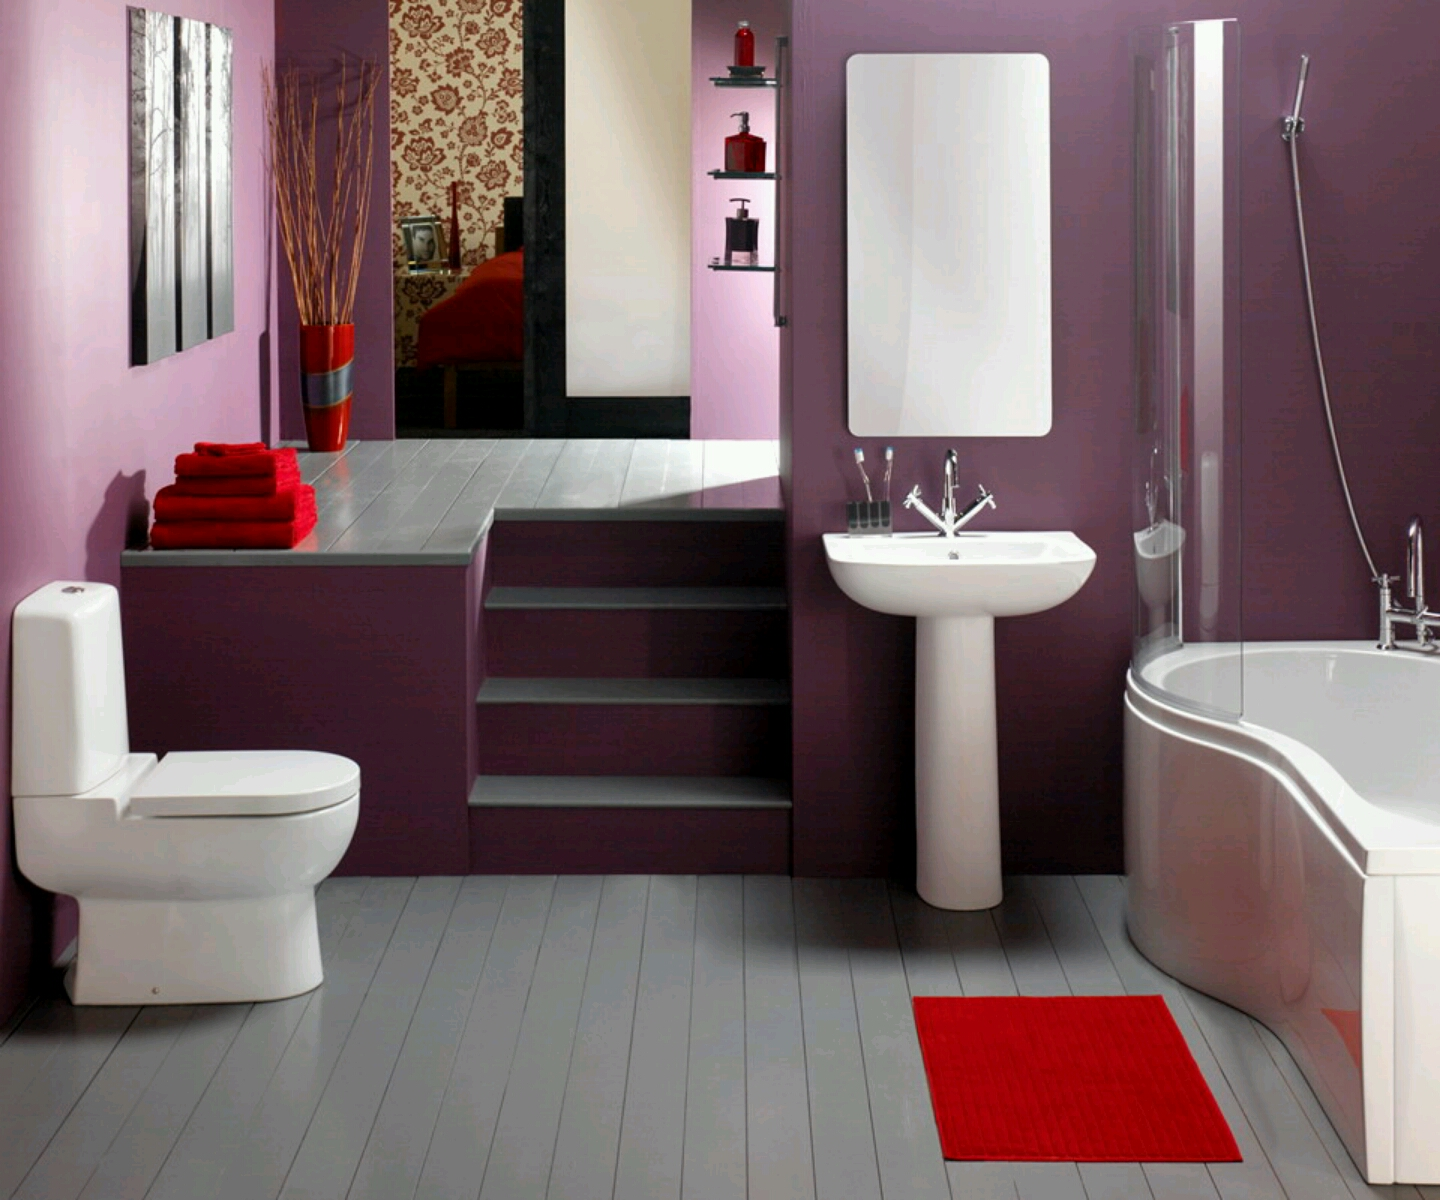 Nice House Decorating Ideas: Mis Decoraciones: Baños Con Acabados En Morado